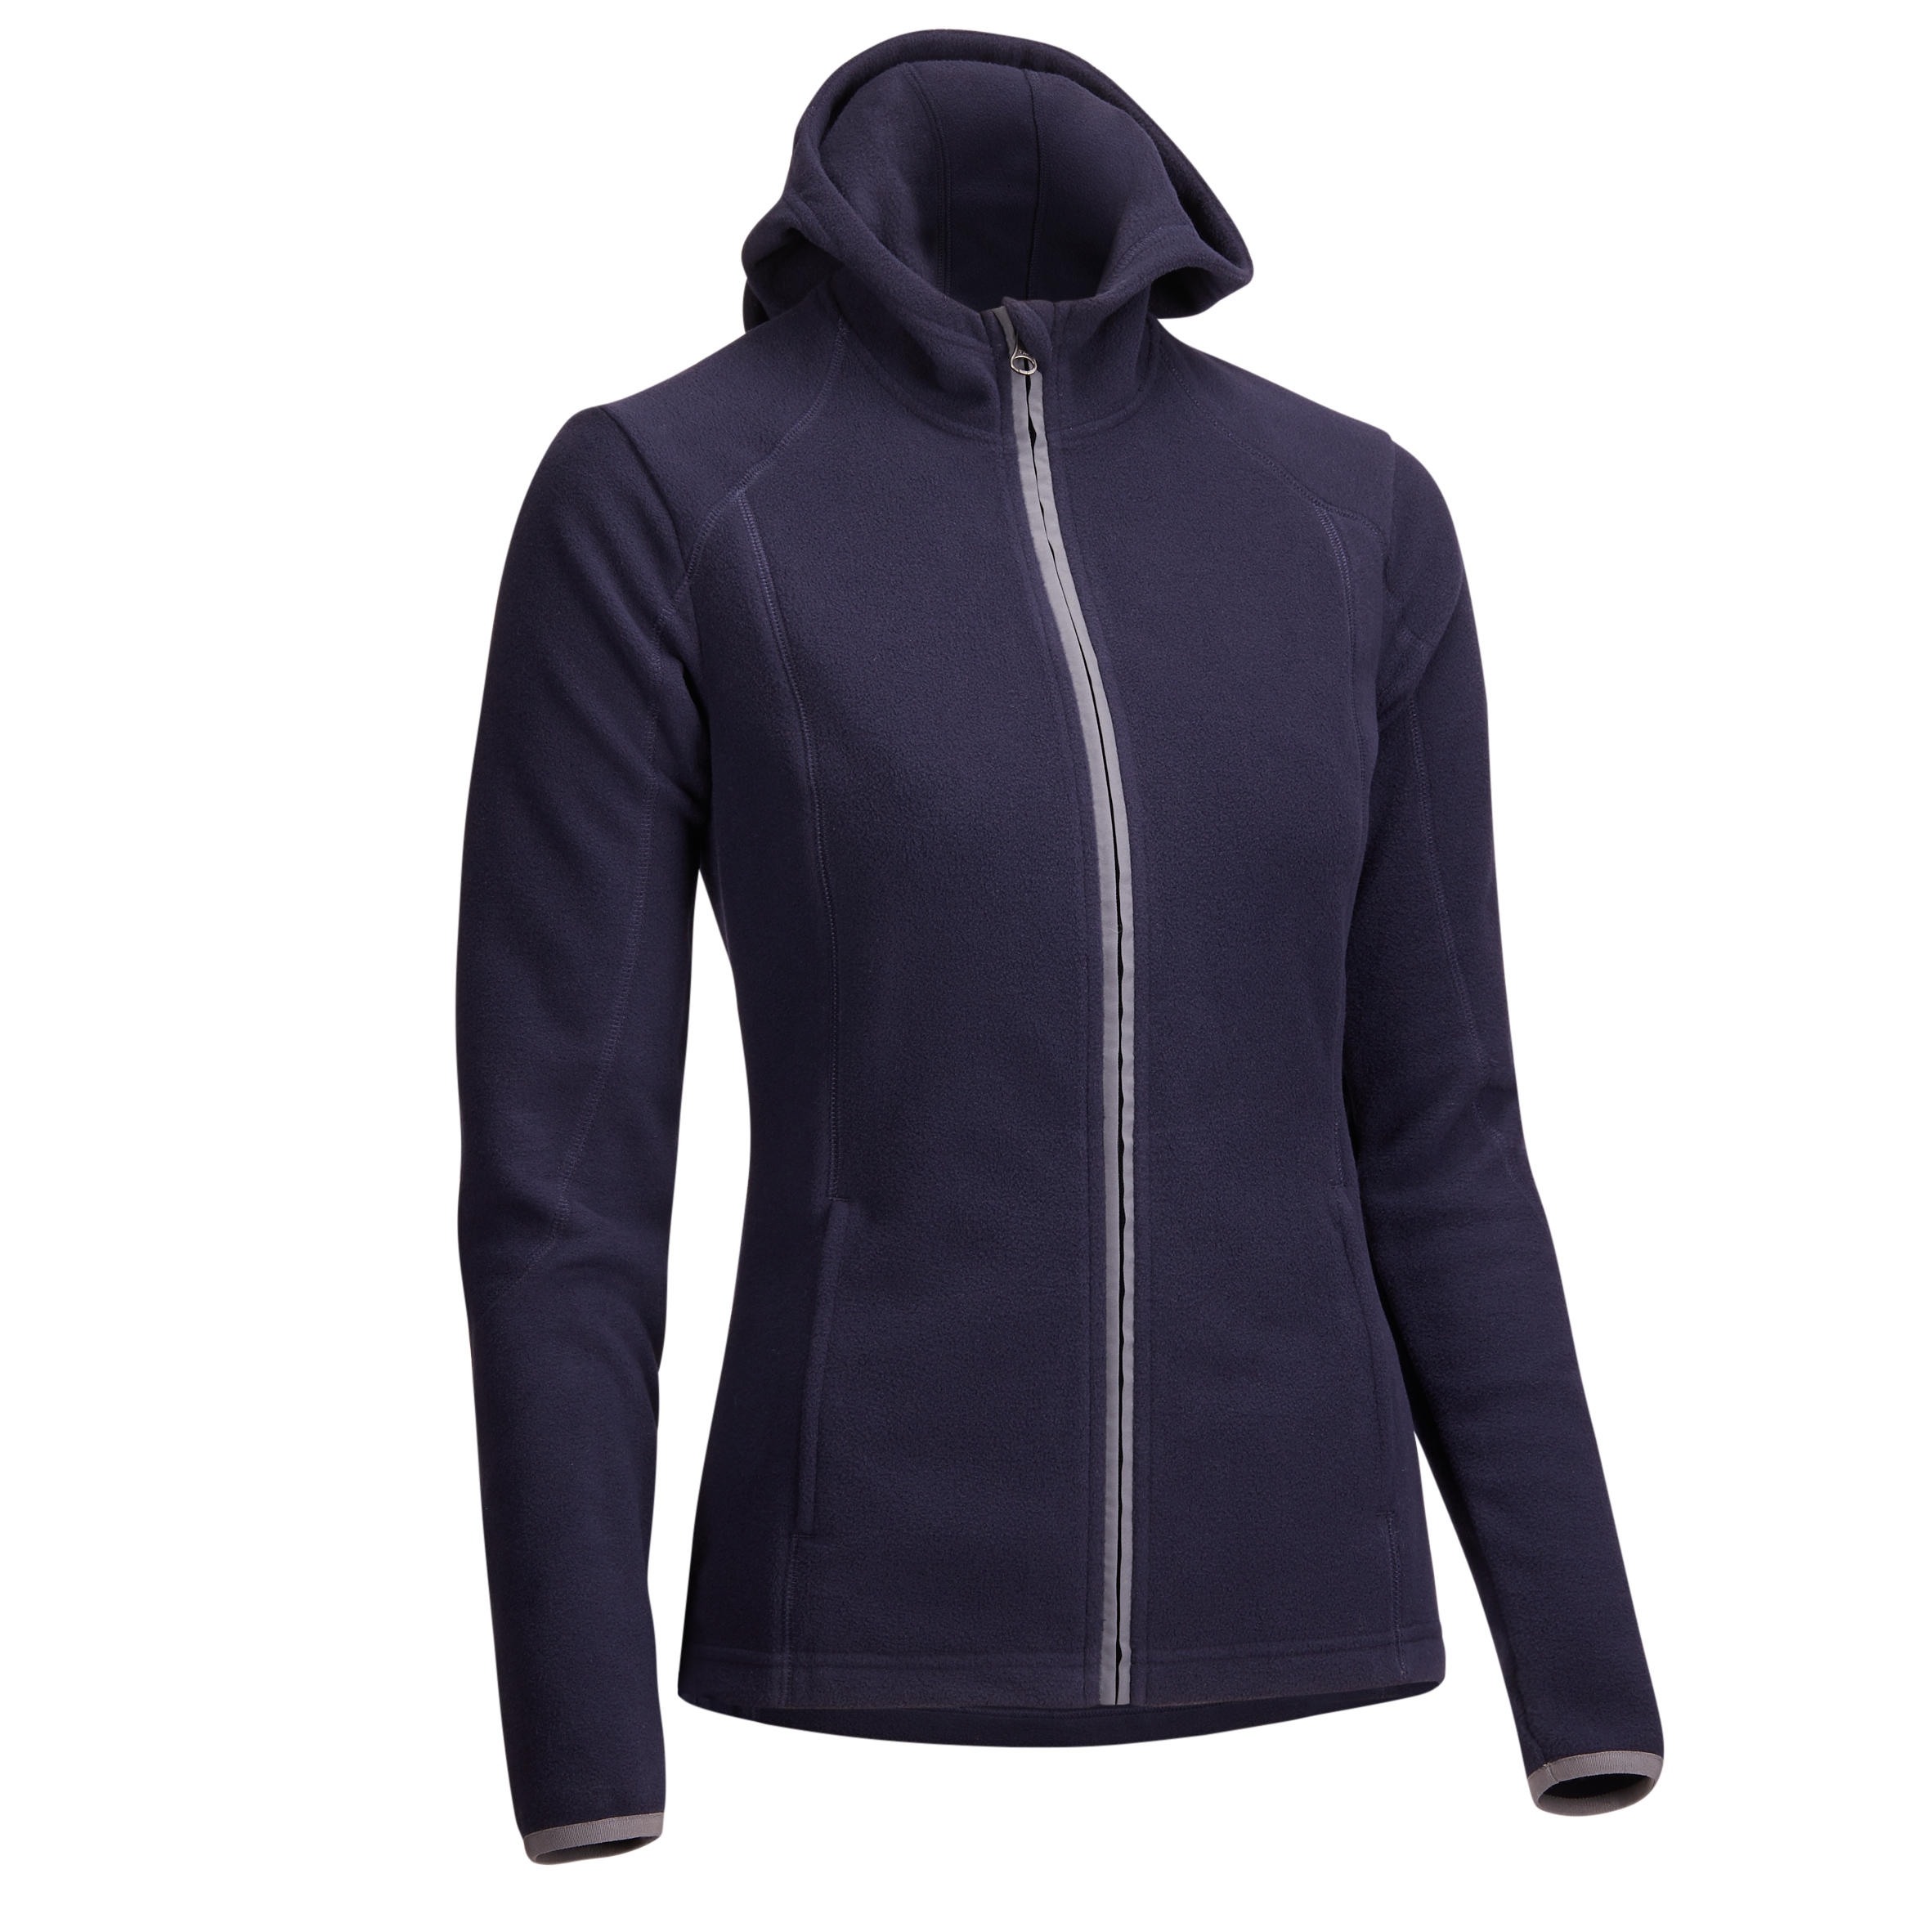 Women's Horseback Riding Hooded 2-In-1 Fleece Sweater - Navy